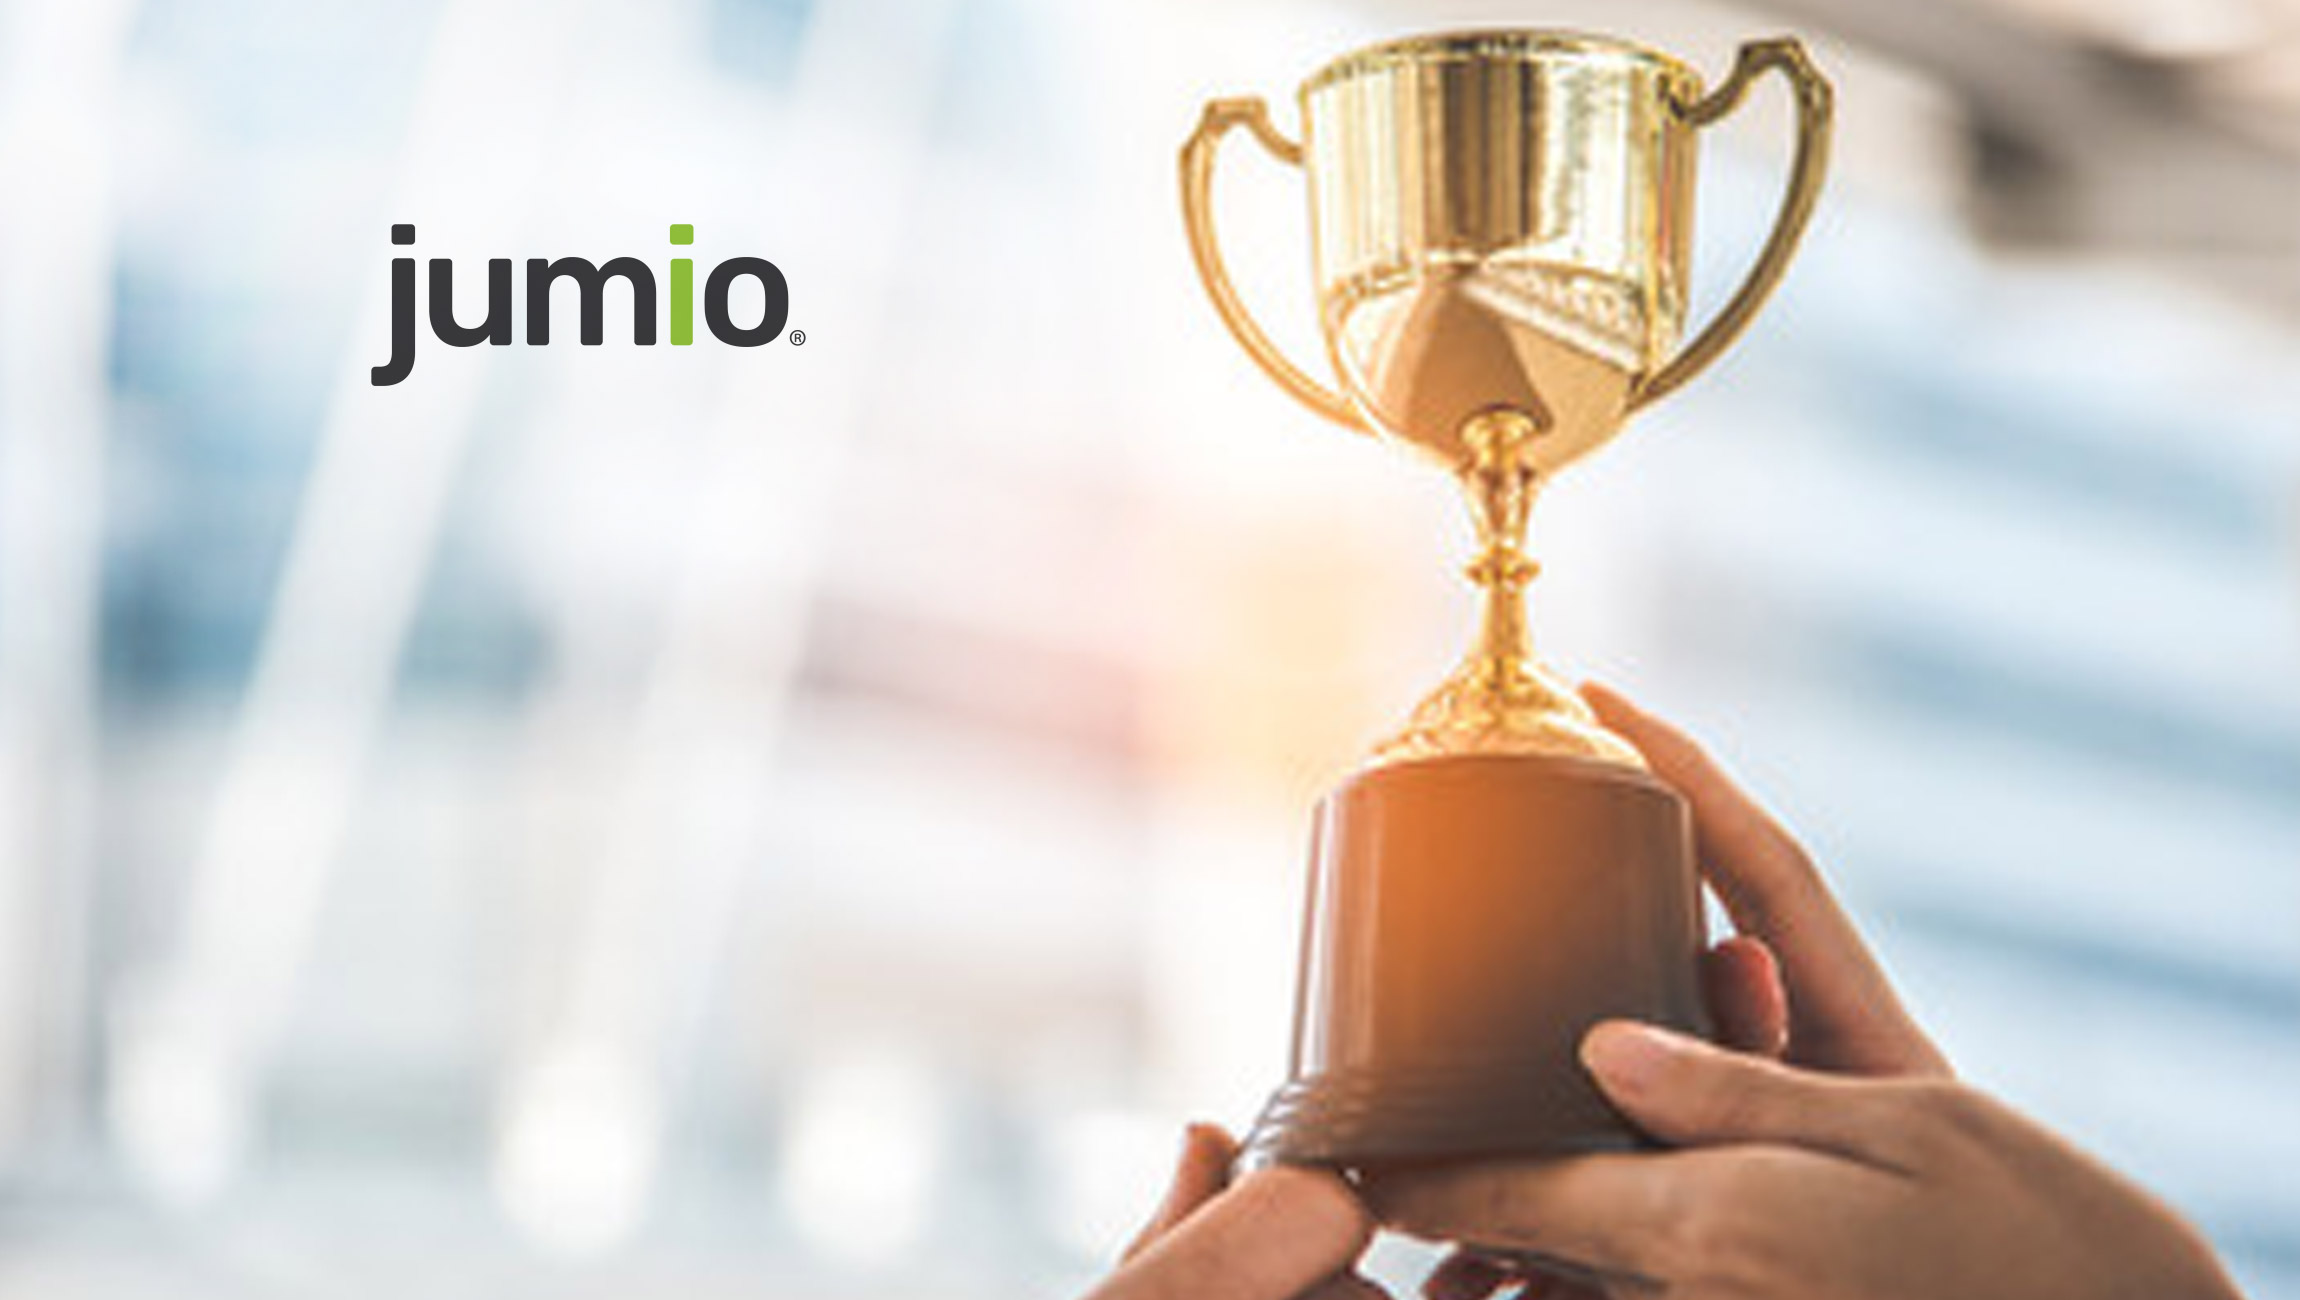 Jumio Go Wins Gold For Identity Proofing And Corroboration In 2021 Cybersecurity Excellence Awards